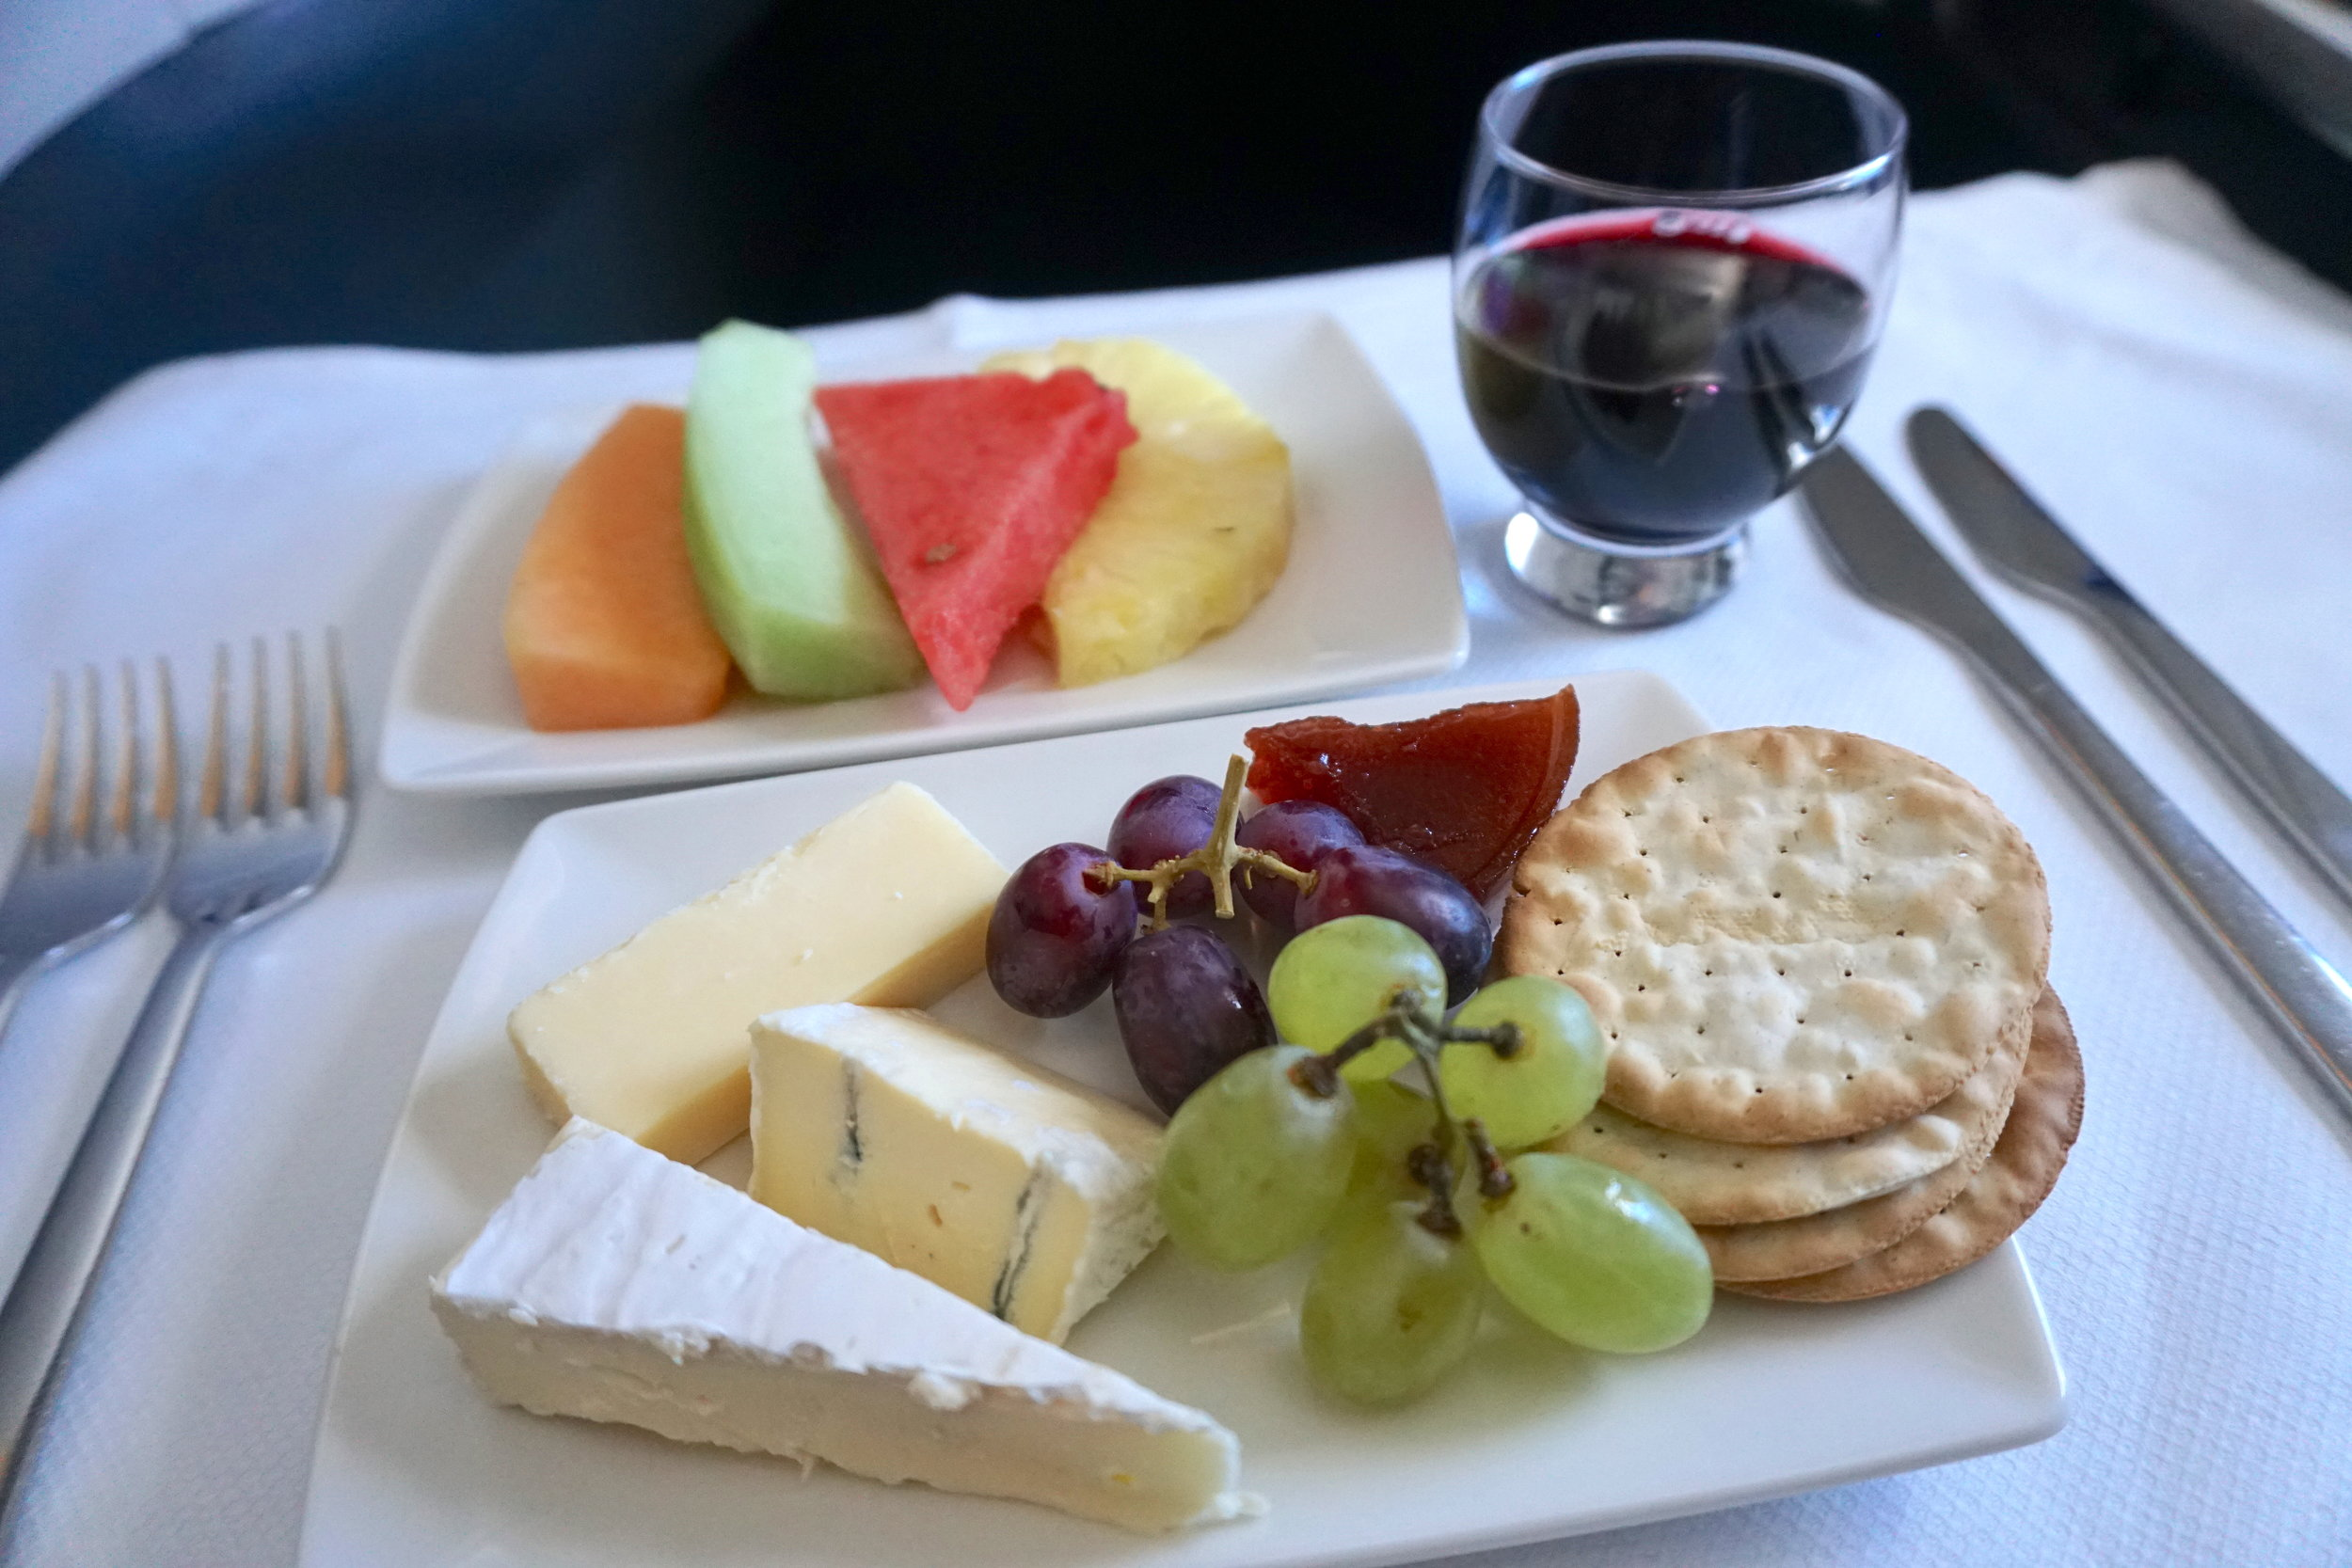 Dessert: International cheese selection with grapes and quince jam paired with Port